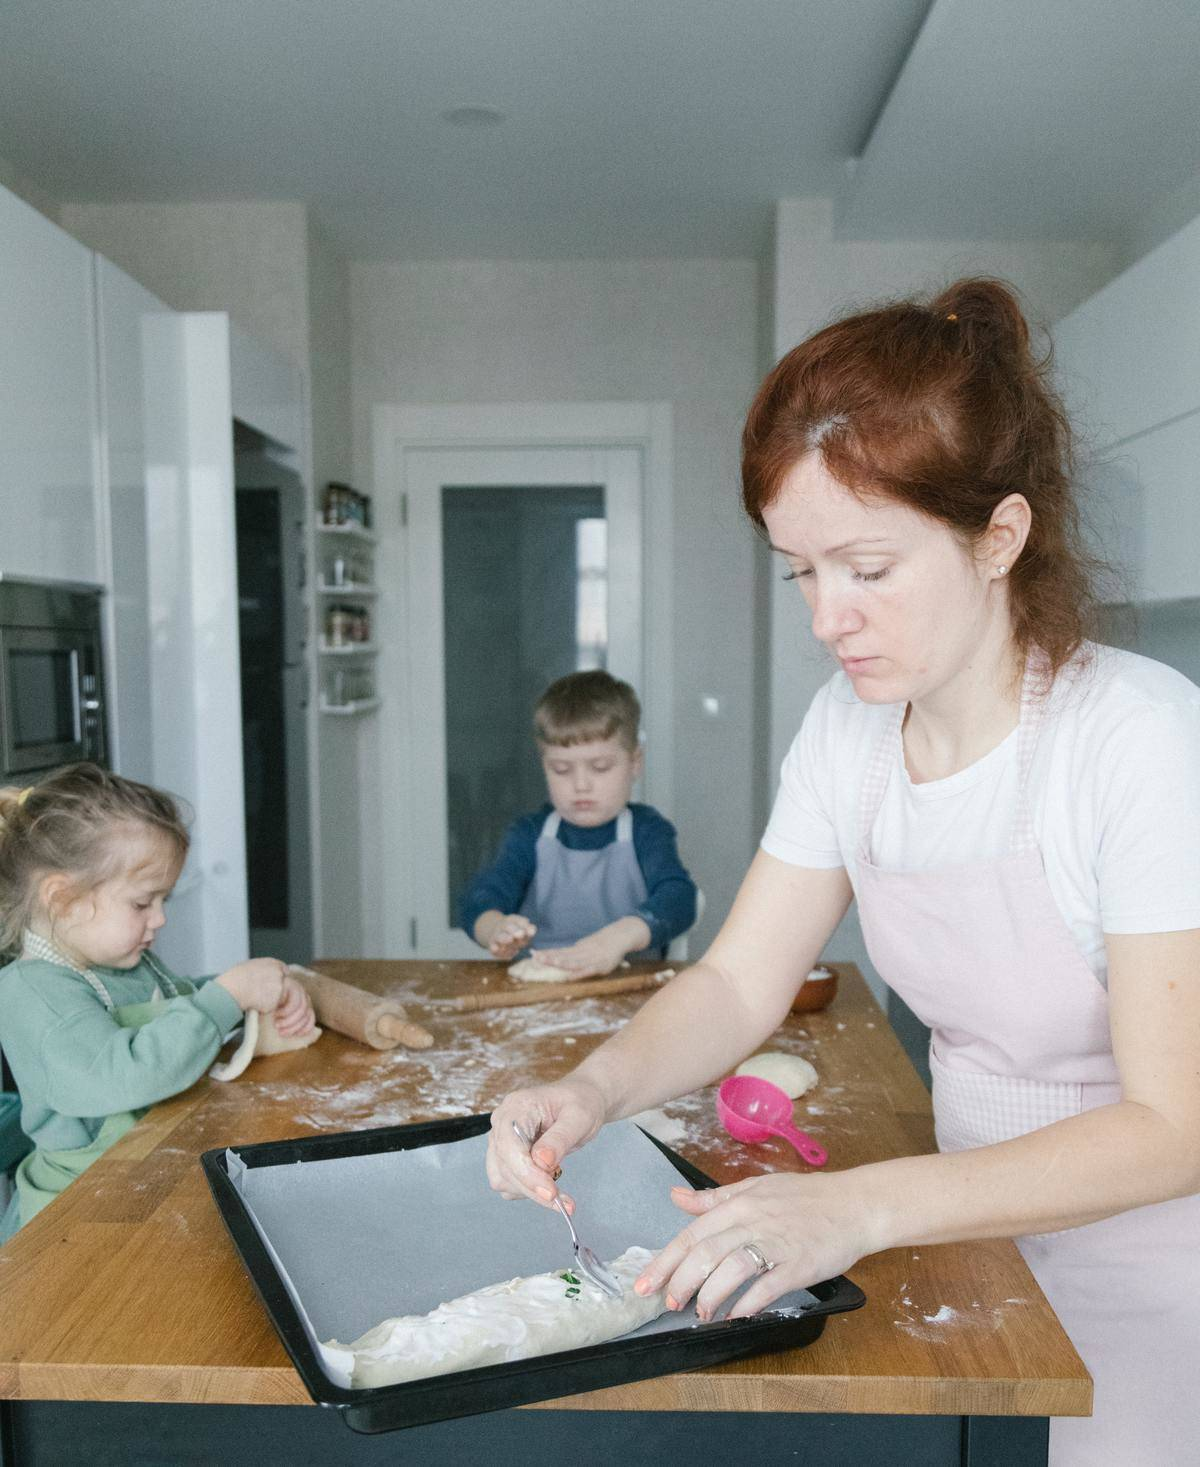 Young family in kitchen, mom baking, two kids helping